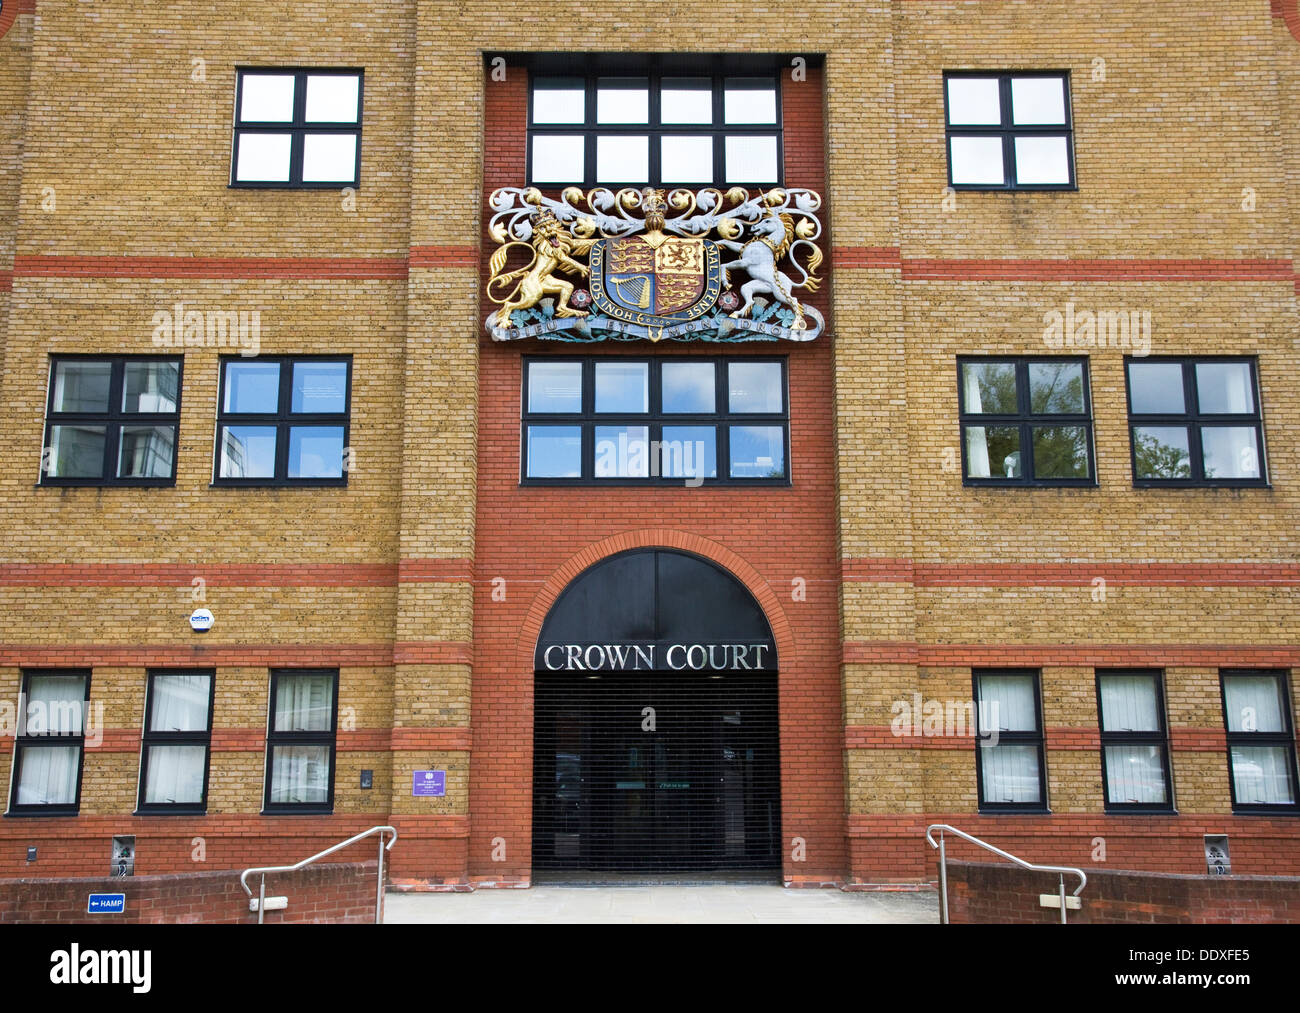 St Albans Crown Court and County Court, St Albans, Hertfordshire, England, UK - Stock Image